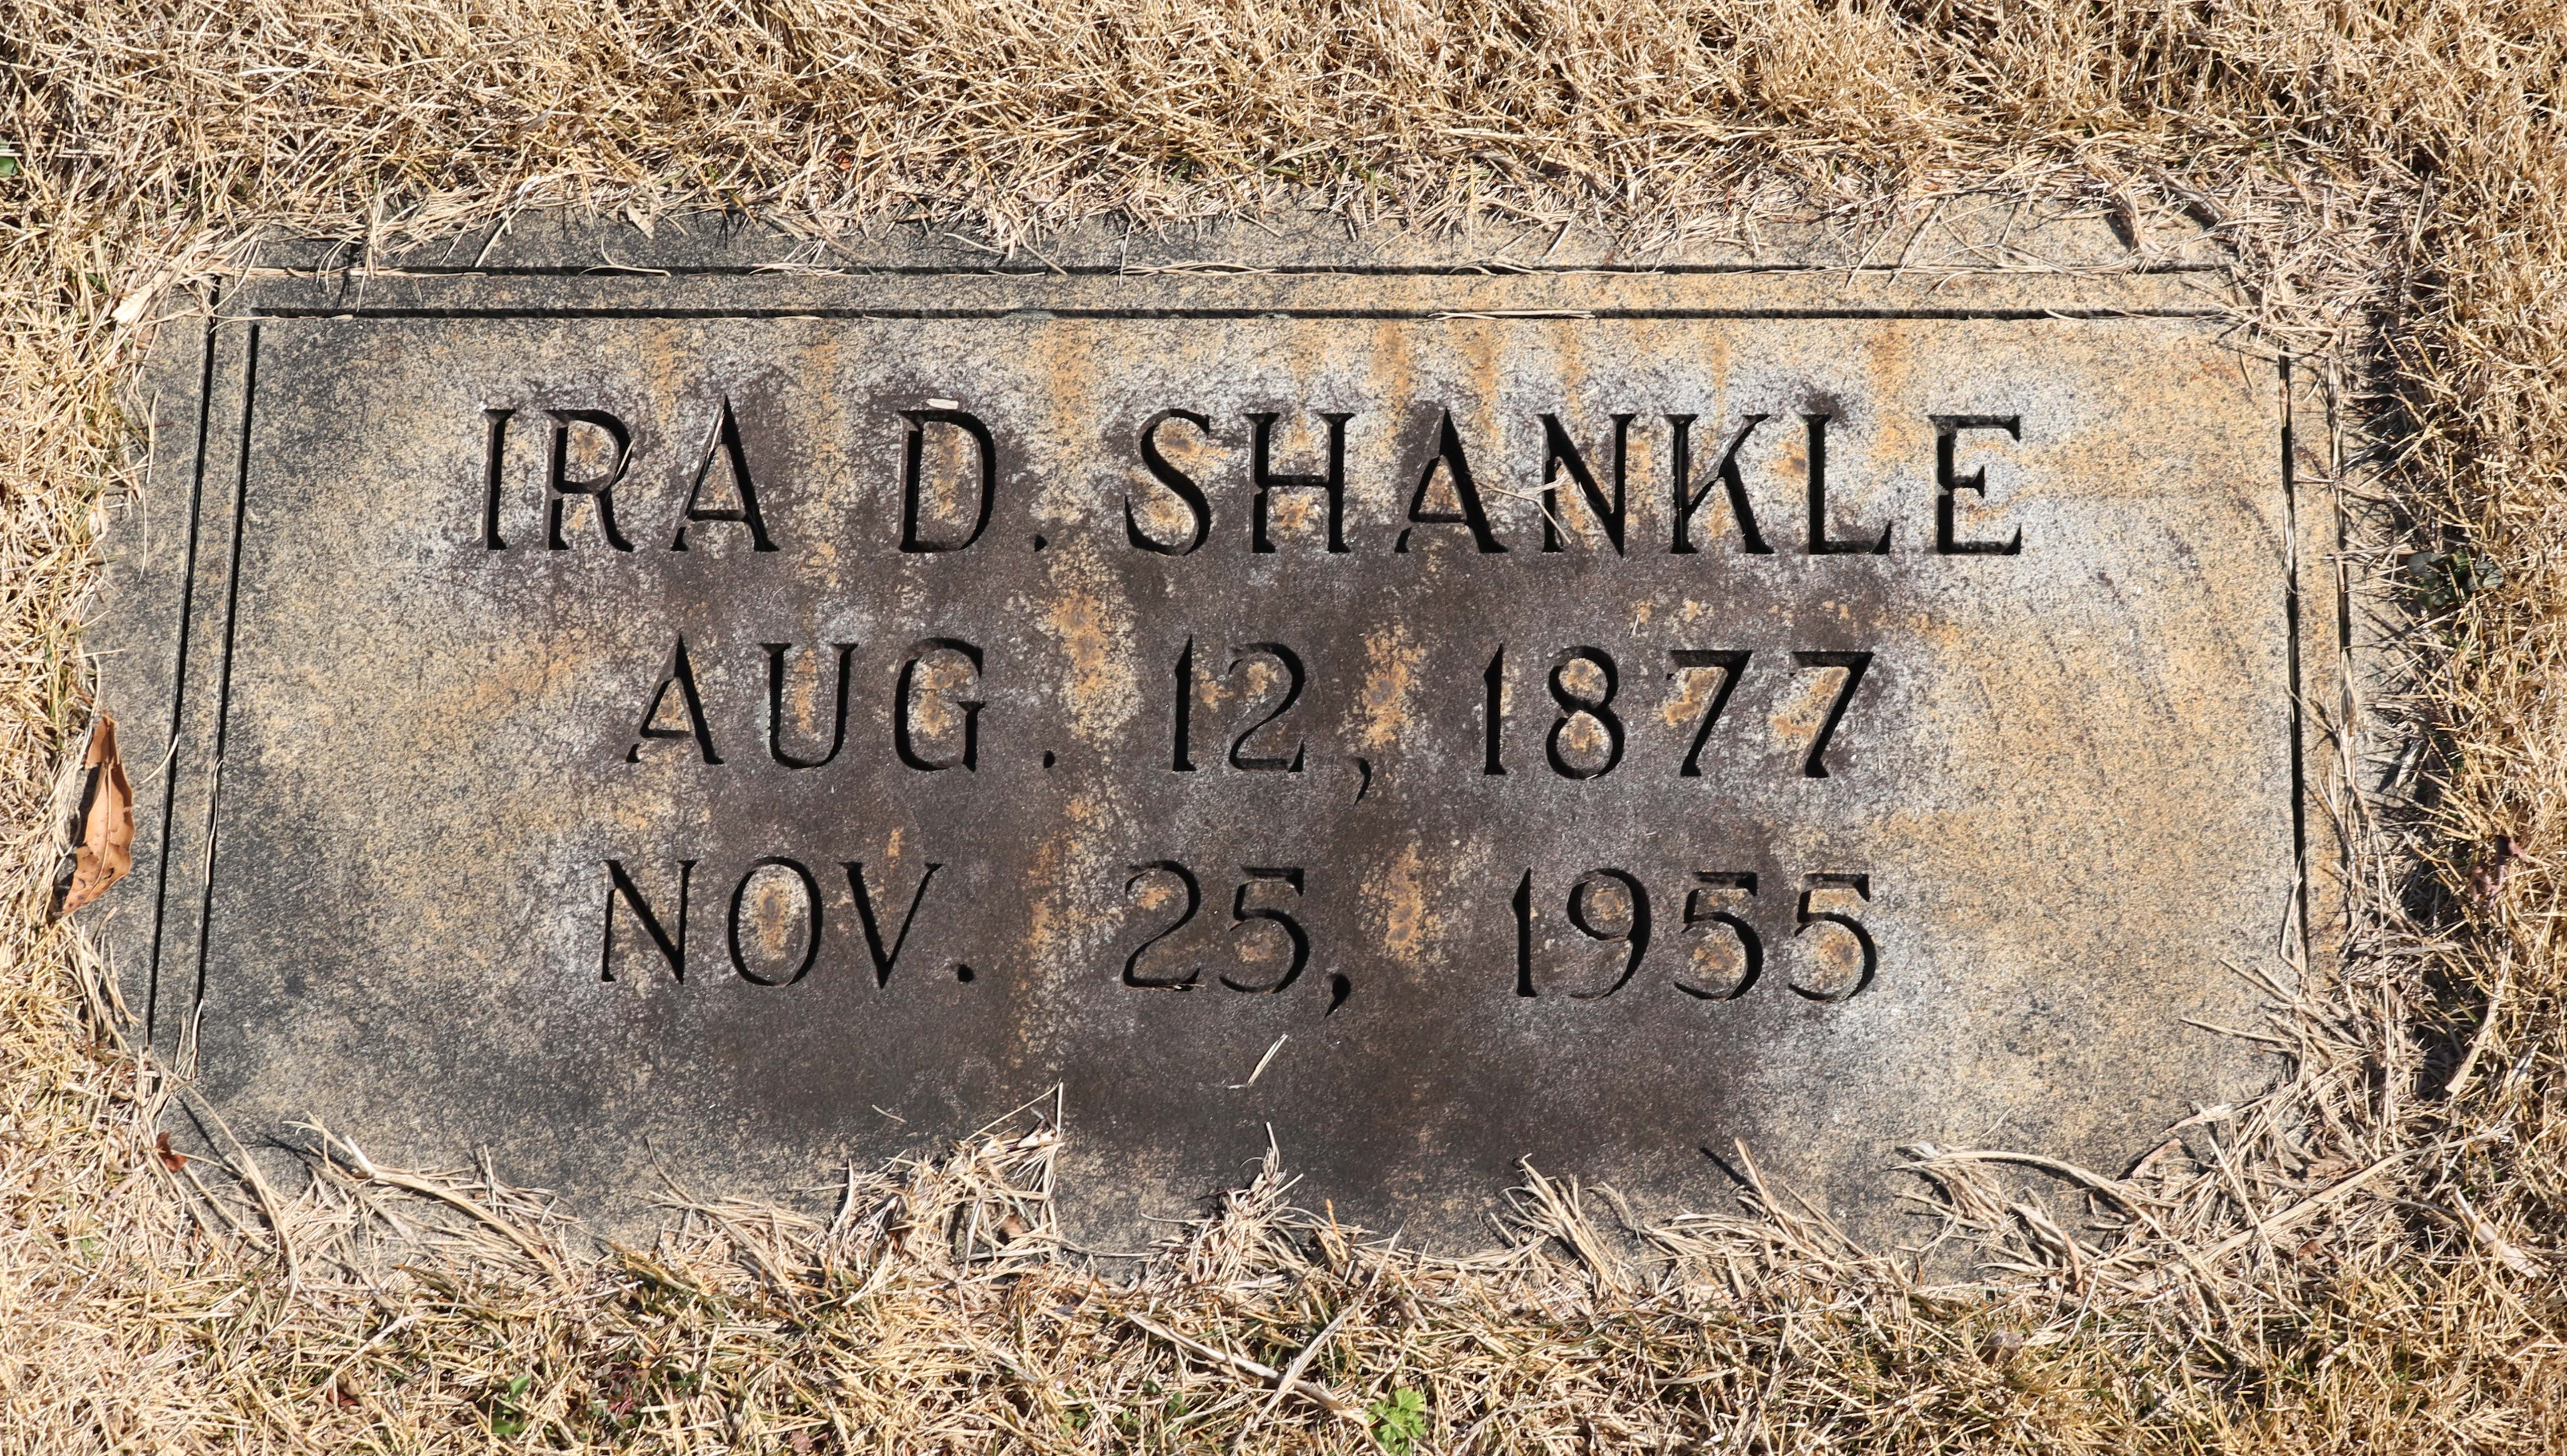 Ira Durant Shankle